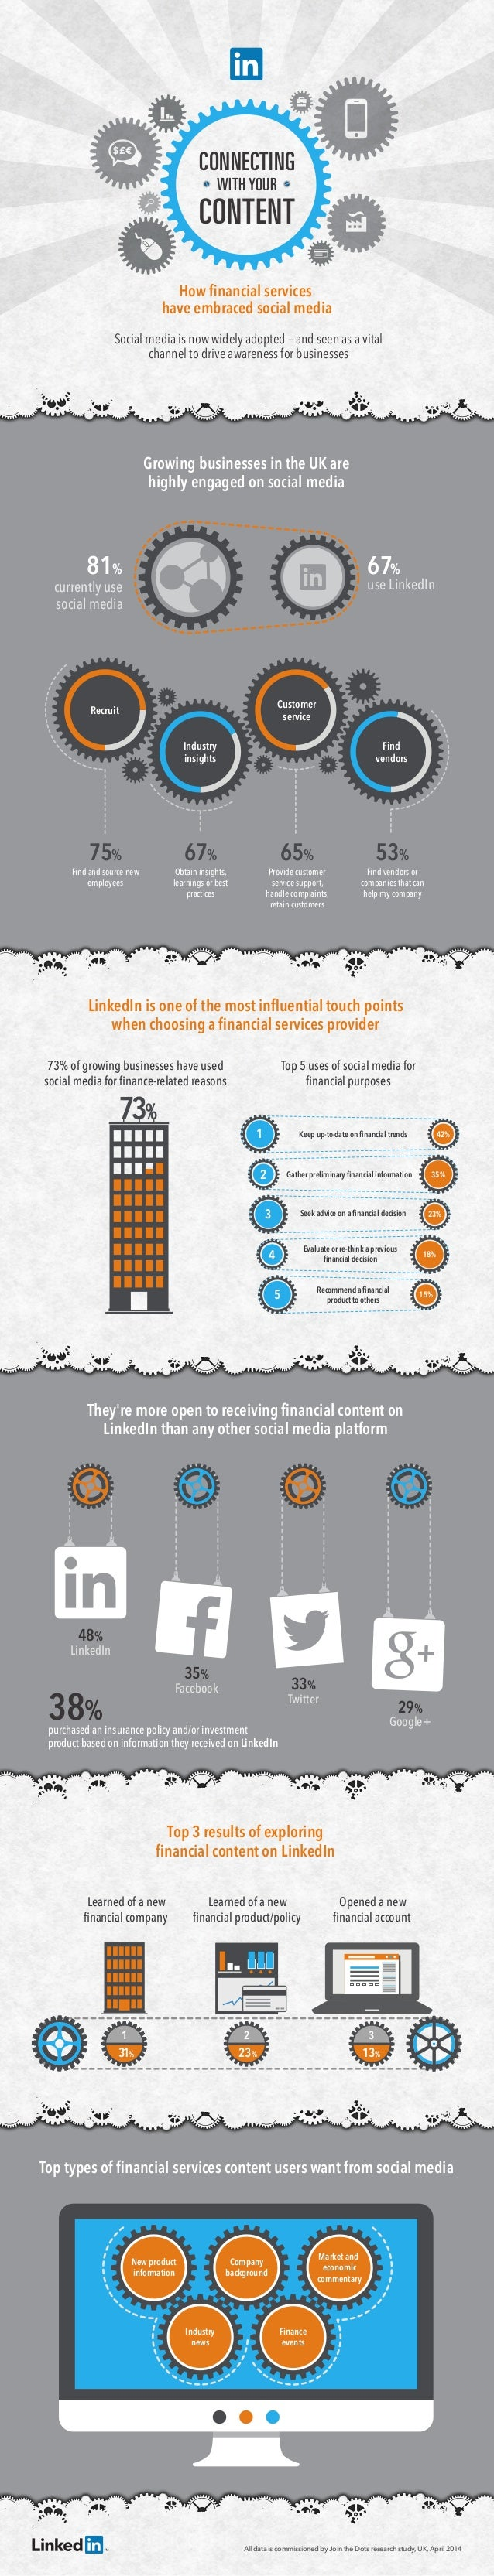 CONNECTING CONTENT WITH YOUR 1 31% All data is commissioned by Join the Dots research study, UK, April 2014 Learned of a n...